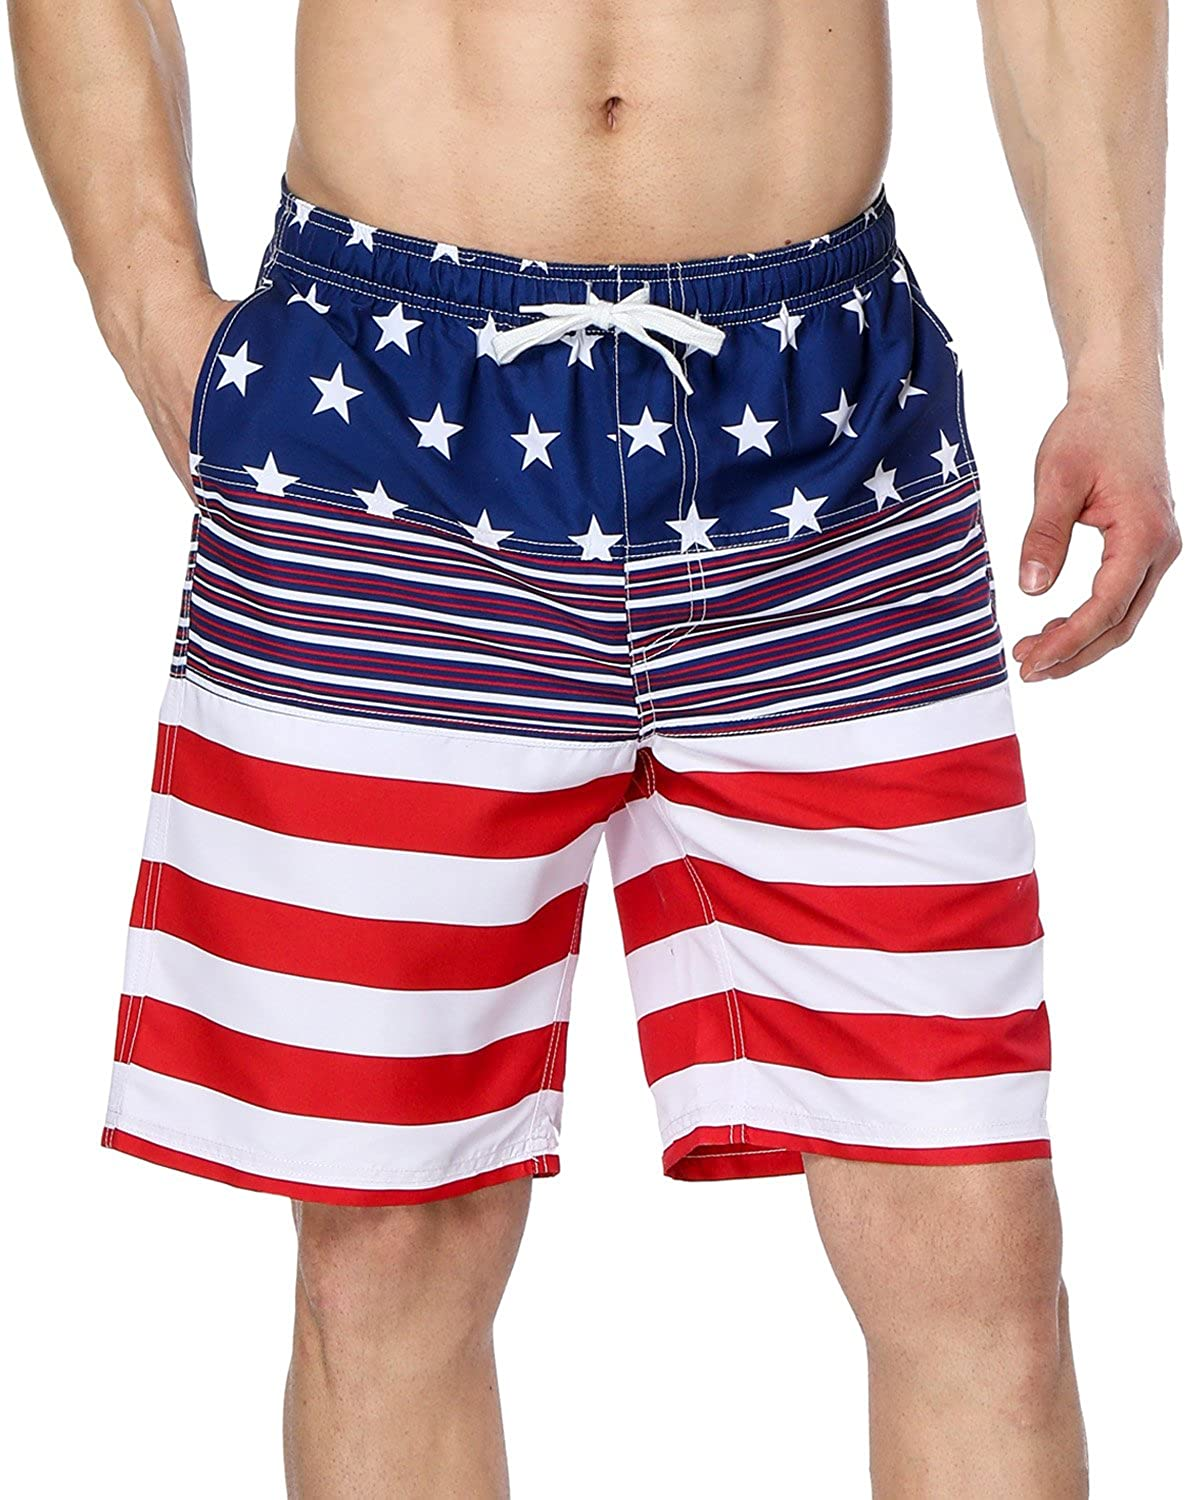 a59045ec4d Lightweighted and quick dry board shorts with us flag features. Two inseam  pockets on sides using breathable fabric. Elastic waistband and drawstring  ...